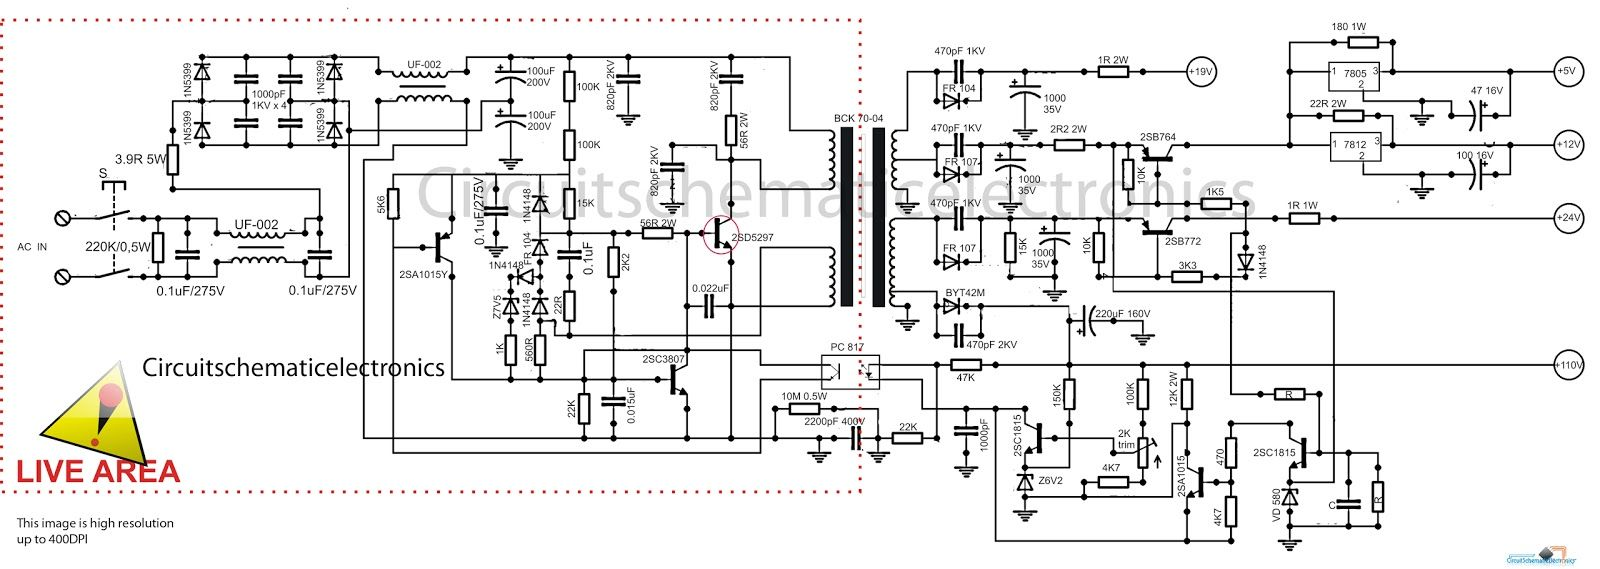 small resolution of switching power suplly for color television circuit electronic circuit